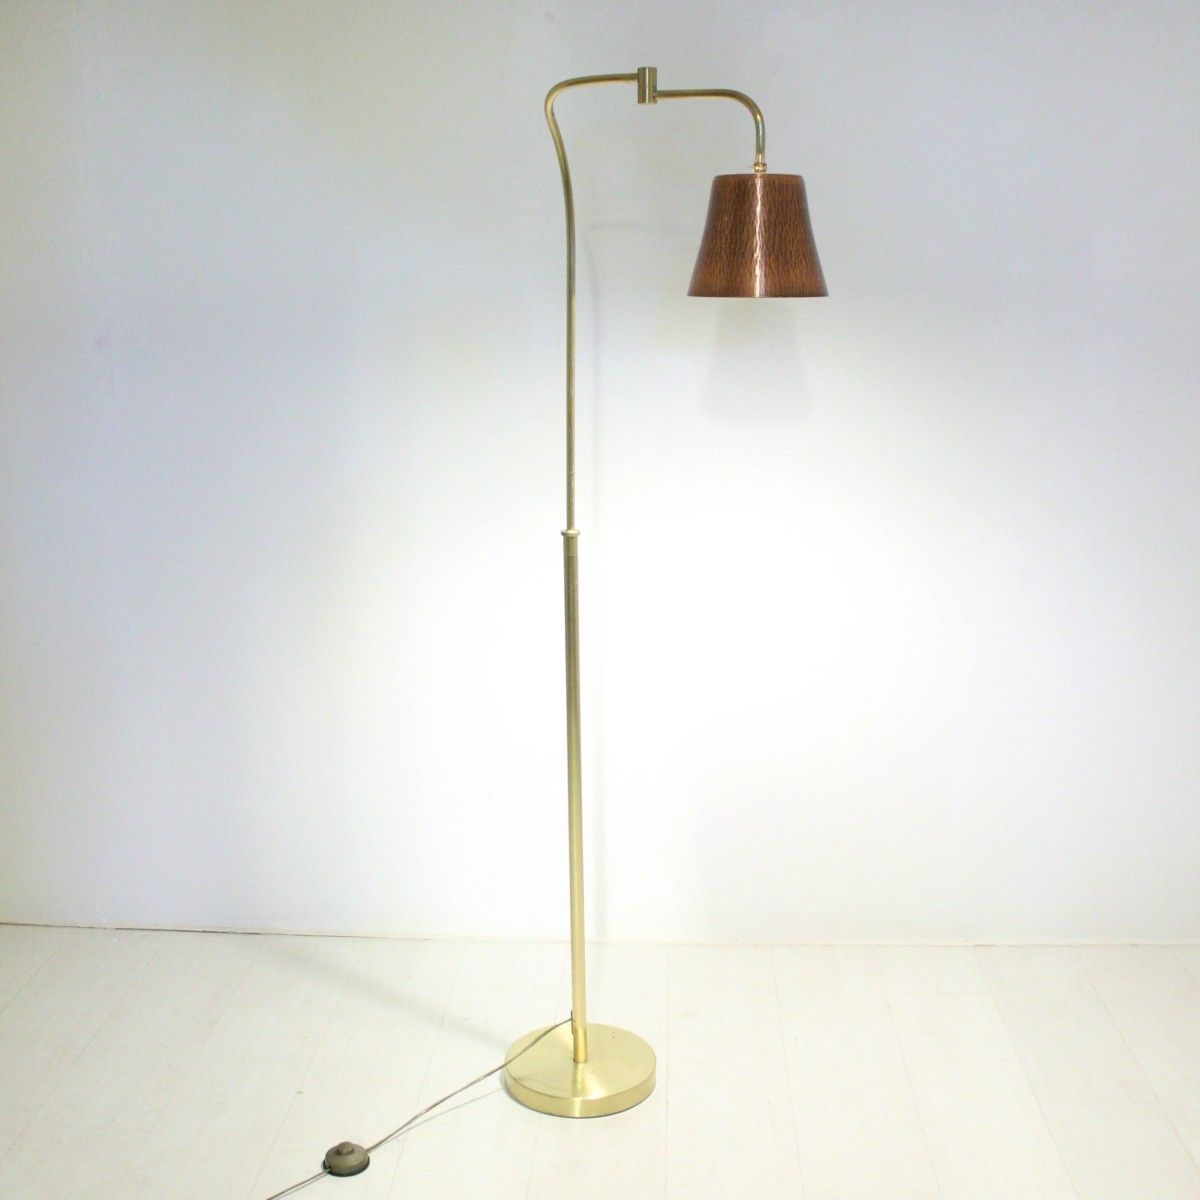 Vintage brass copper floor lamp 1970s for sale at pamono for 1970s floor lamps